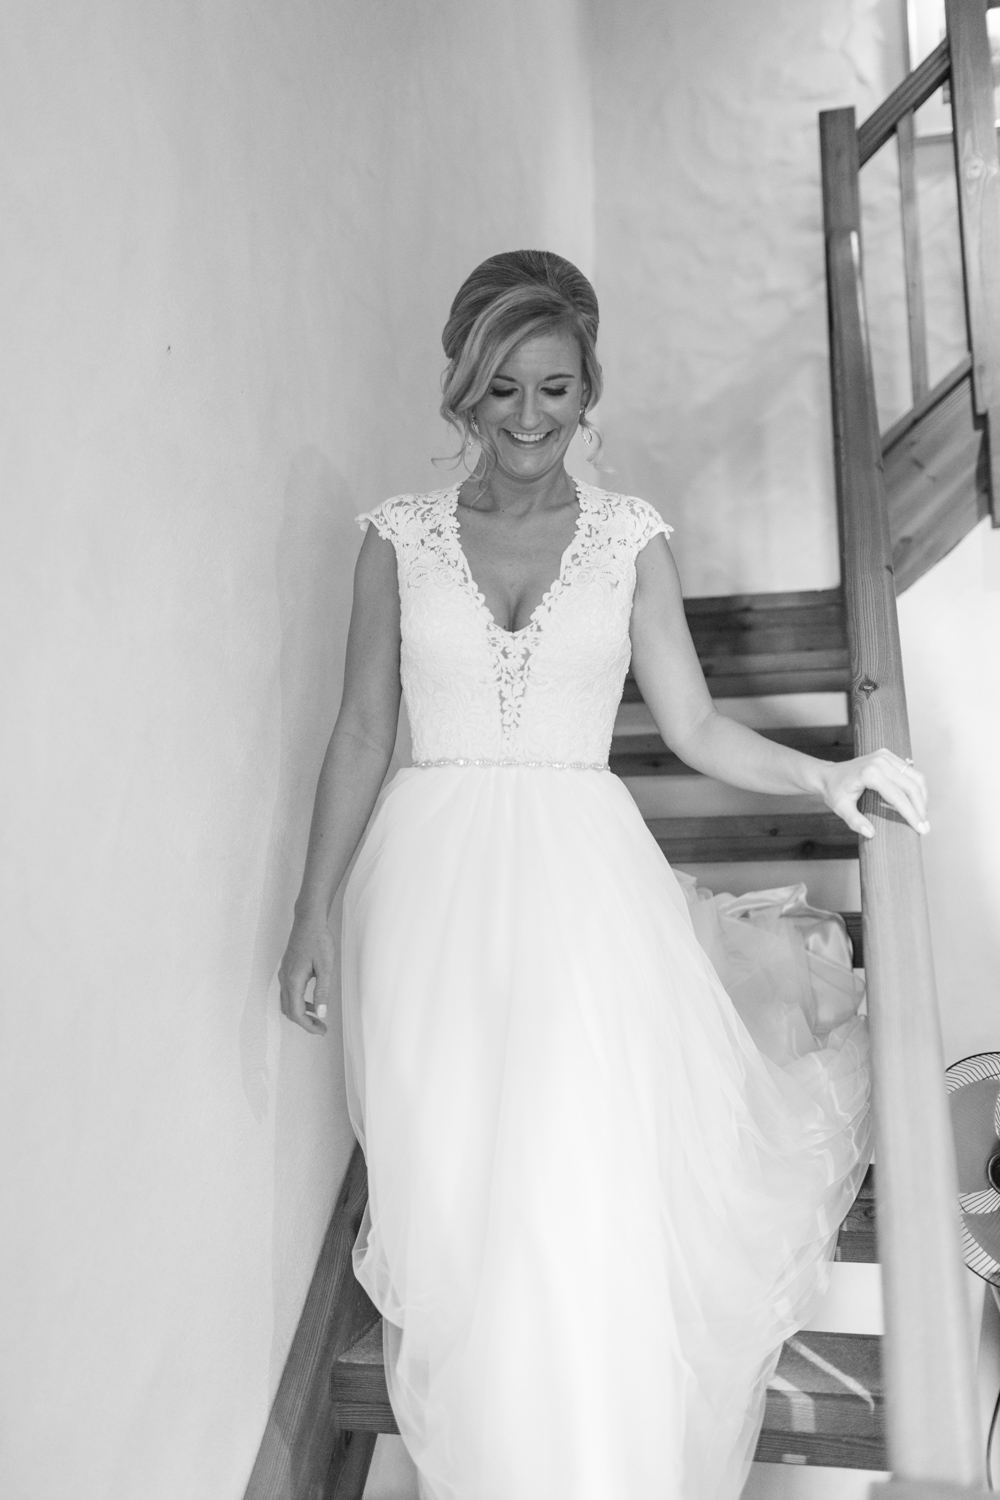 Bride coming down the stairs in her wedding dress with a tulle skirt